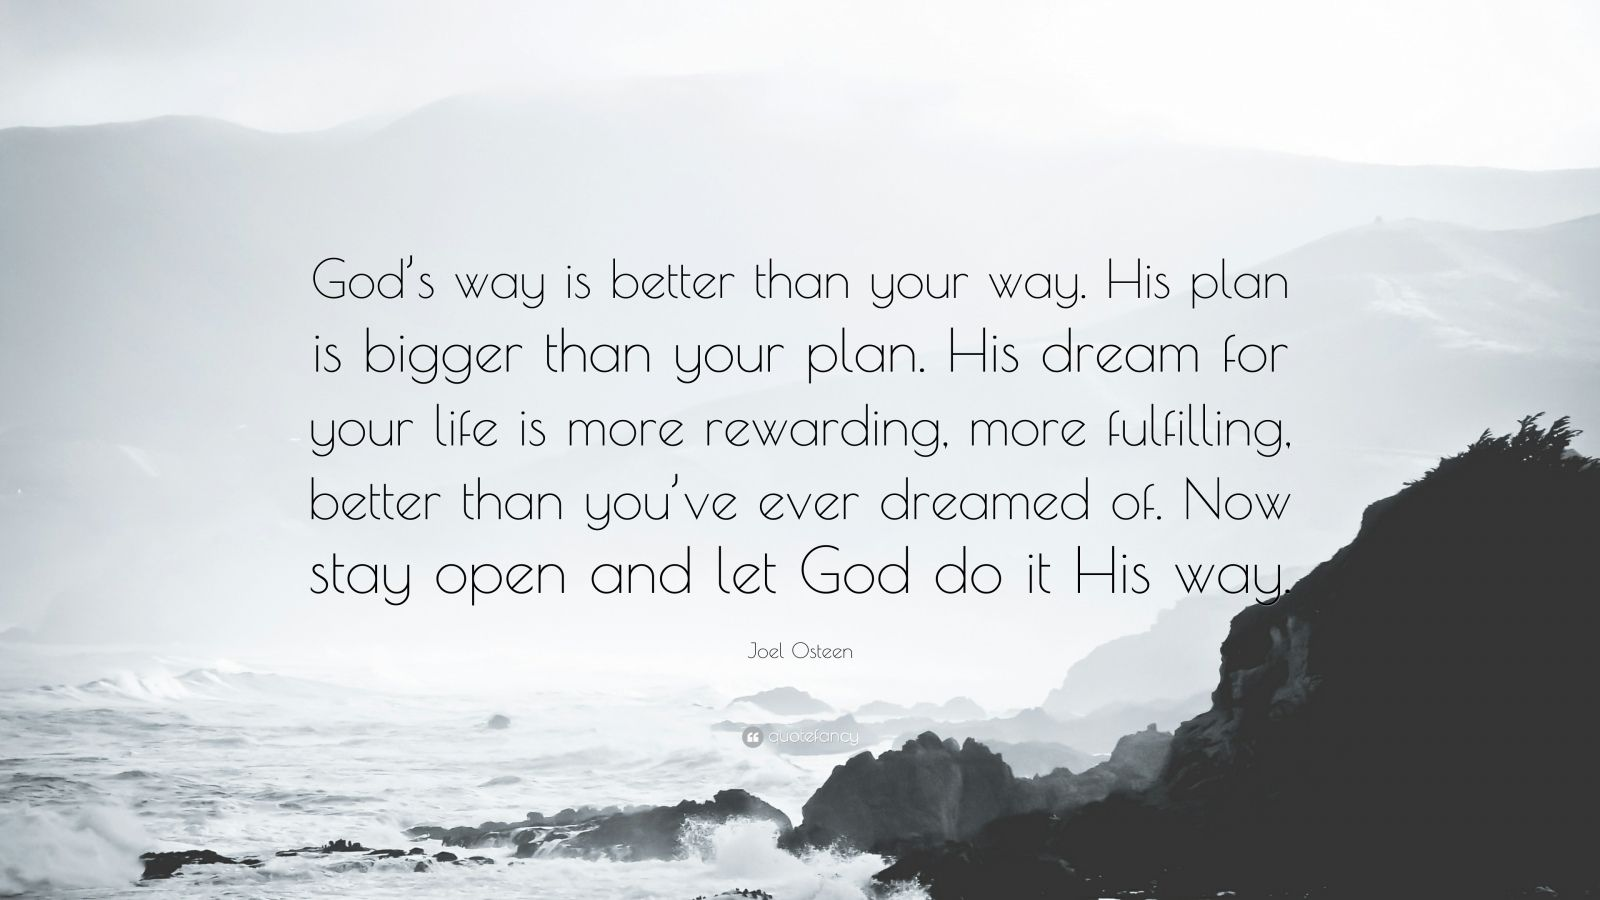 """Joel Osteen Quote: """"God's way is better than your way. His plan is bigger than your plan. His dream for your life is more rewarding, more fulfilling, better than you've ever dreamed of. Now stay open and let God do it His way."""""""